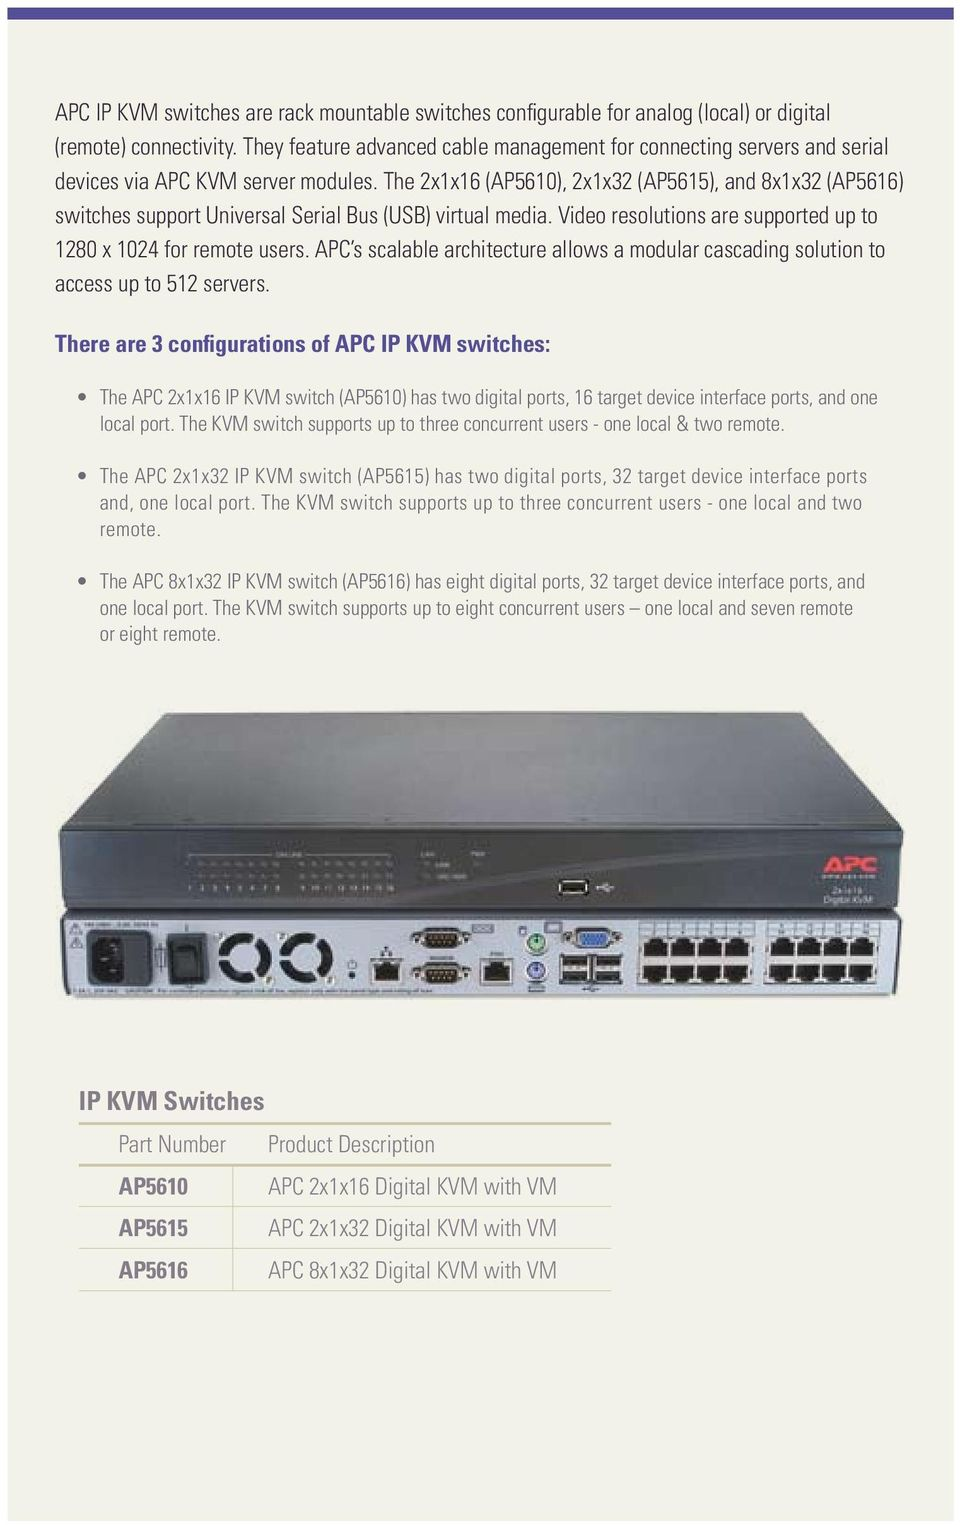 The 2x1x16 (AP5610), 2x1x32 (AP5615), and 8x1x32 (AP5616) switches support Universal Serial Bus (USB) virtual media. Video resolutions are supported up to 1280 x 1024 for remote users.